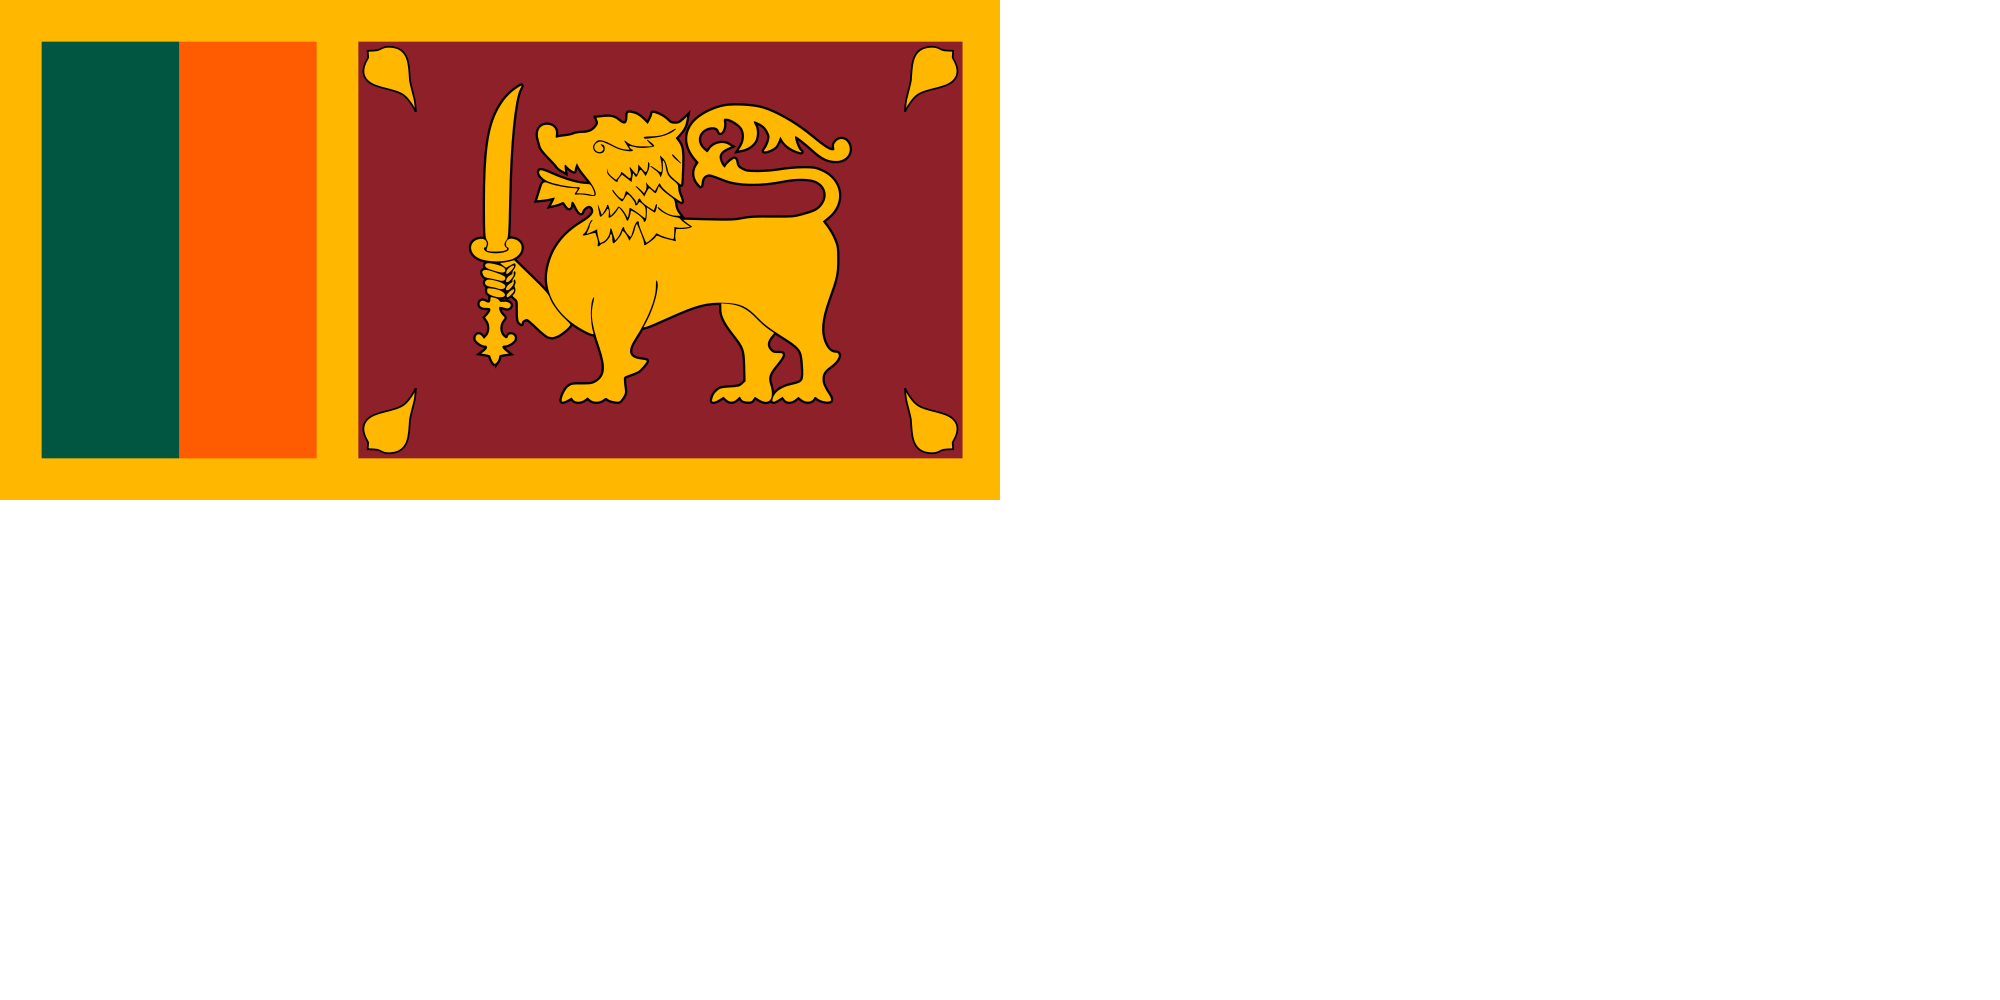 Sri Lanka (Naval ensign)